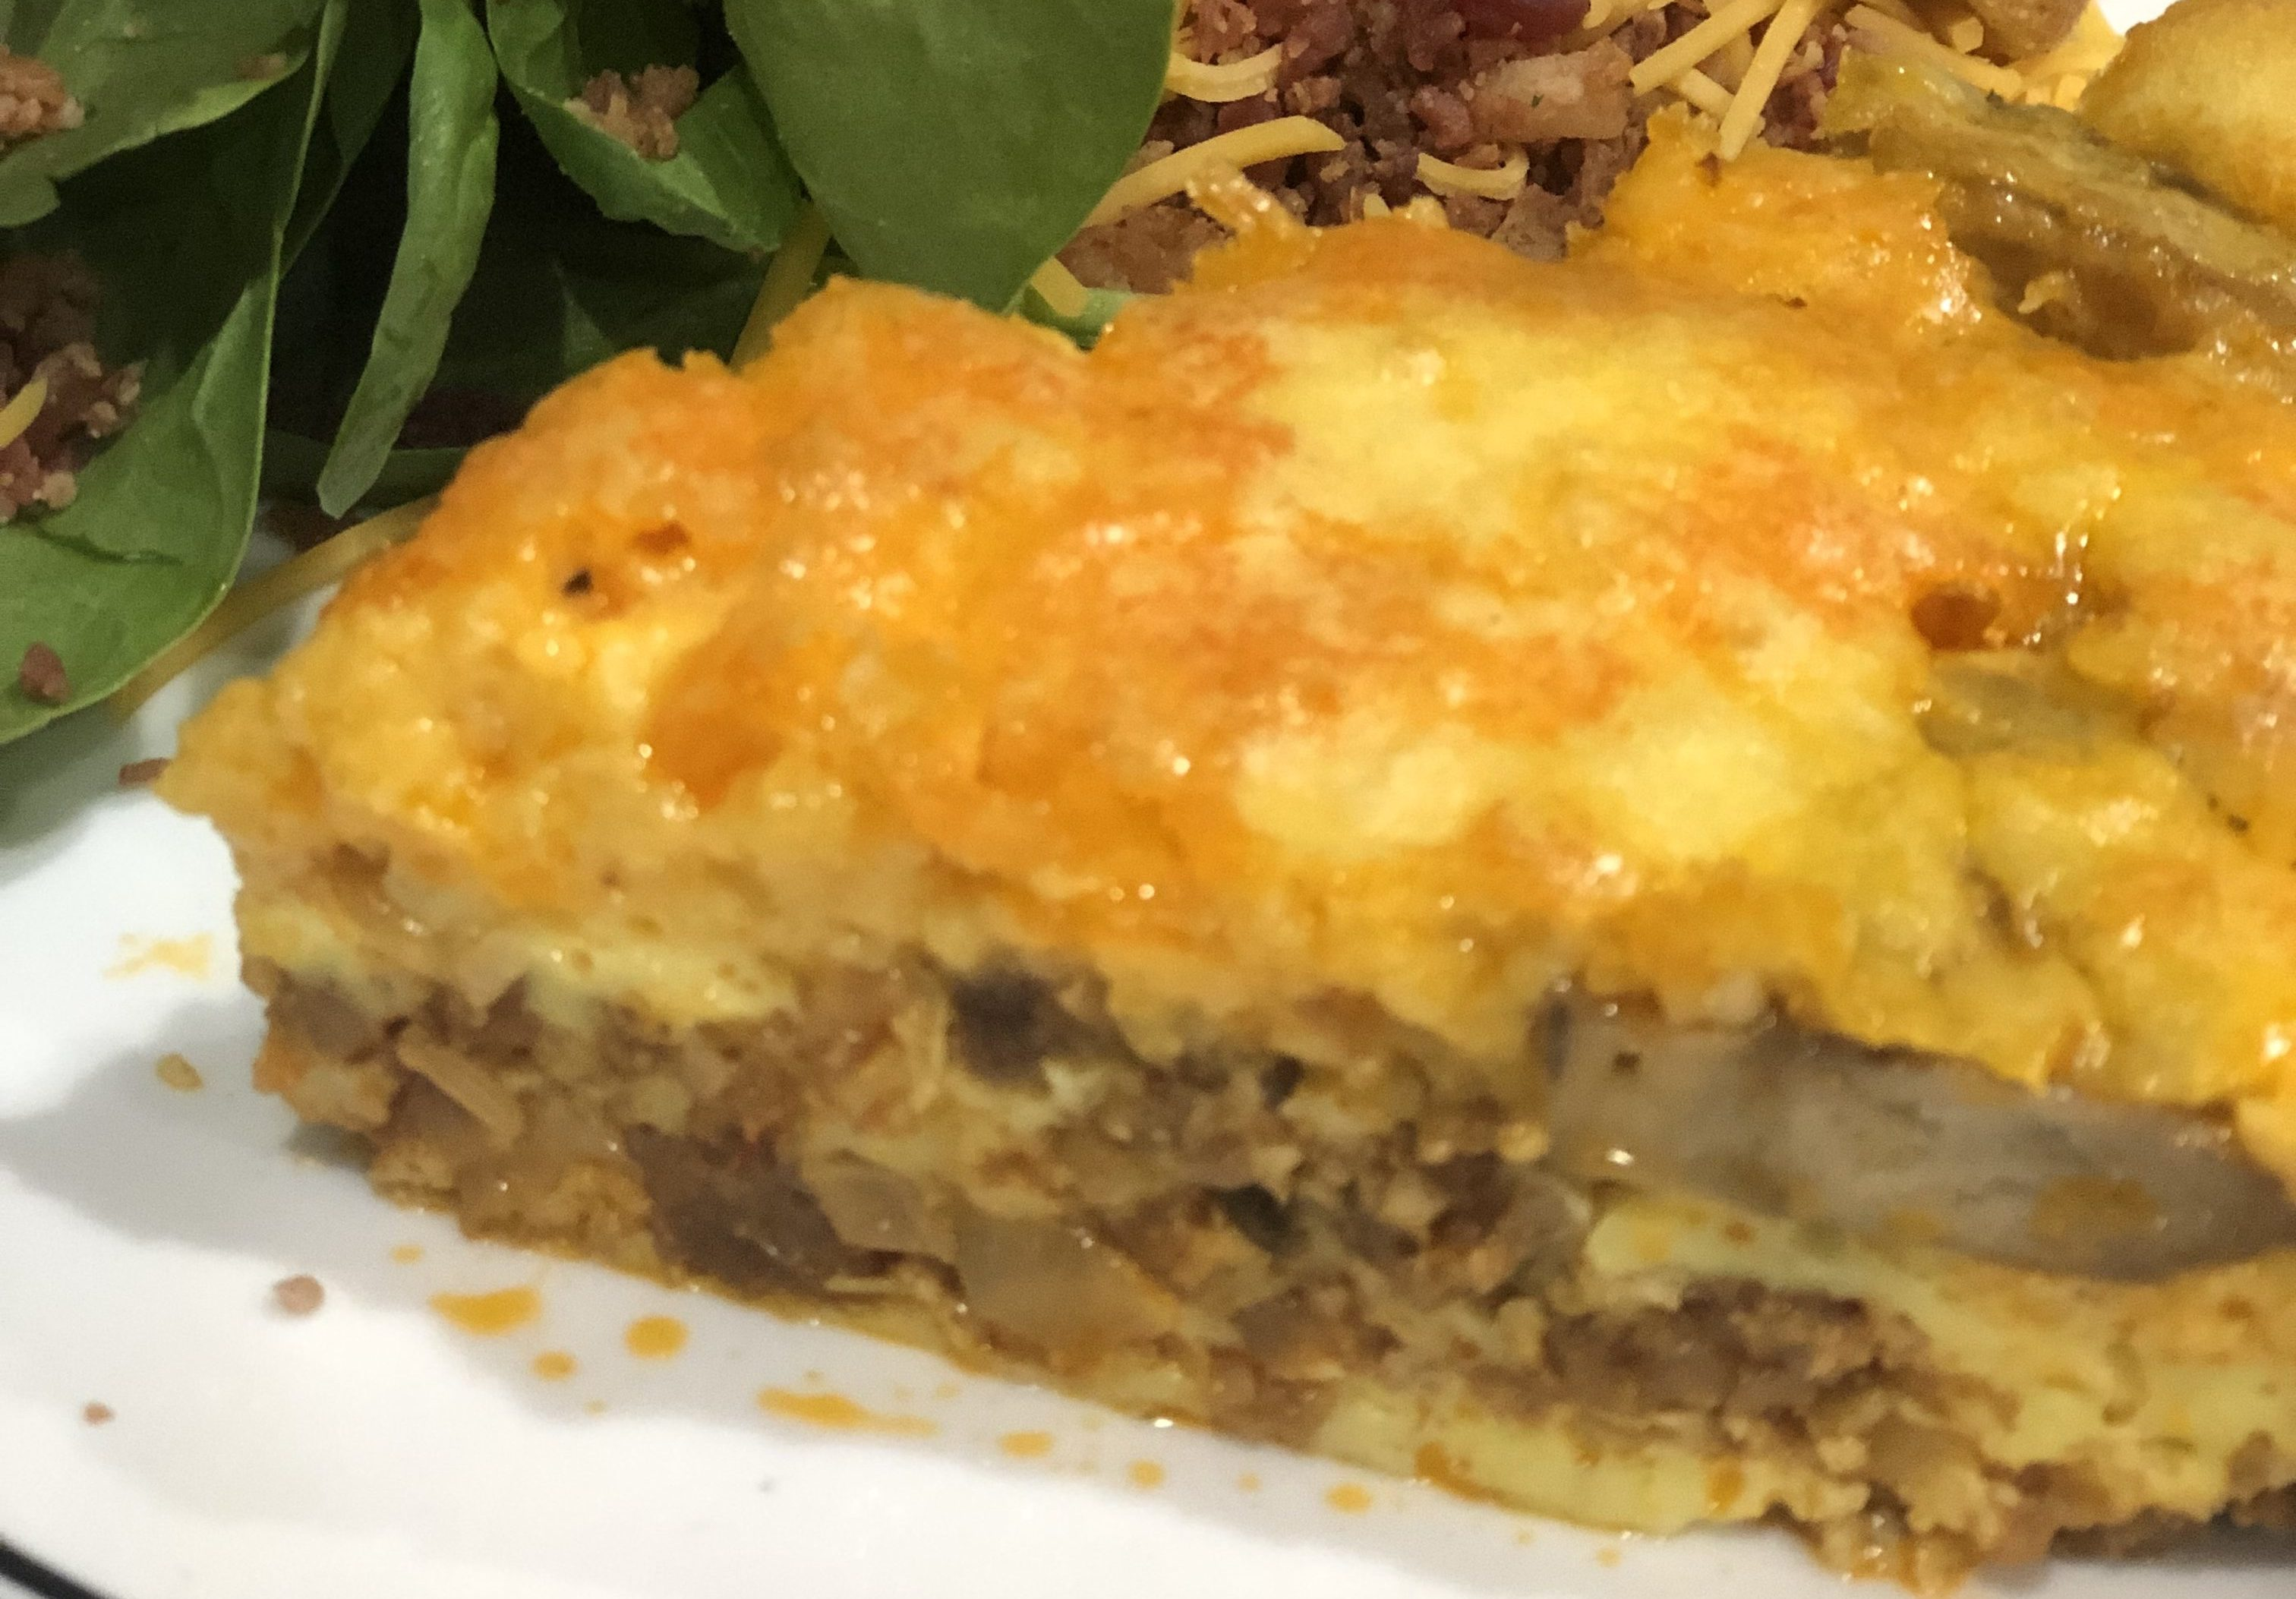 Sausage and Caramelized Onion Quiche